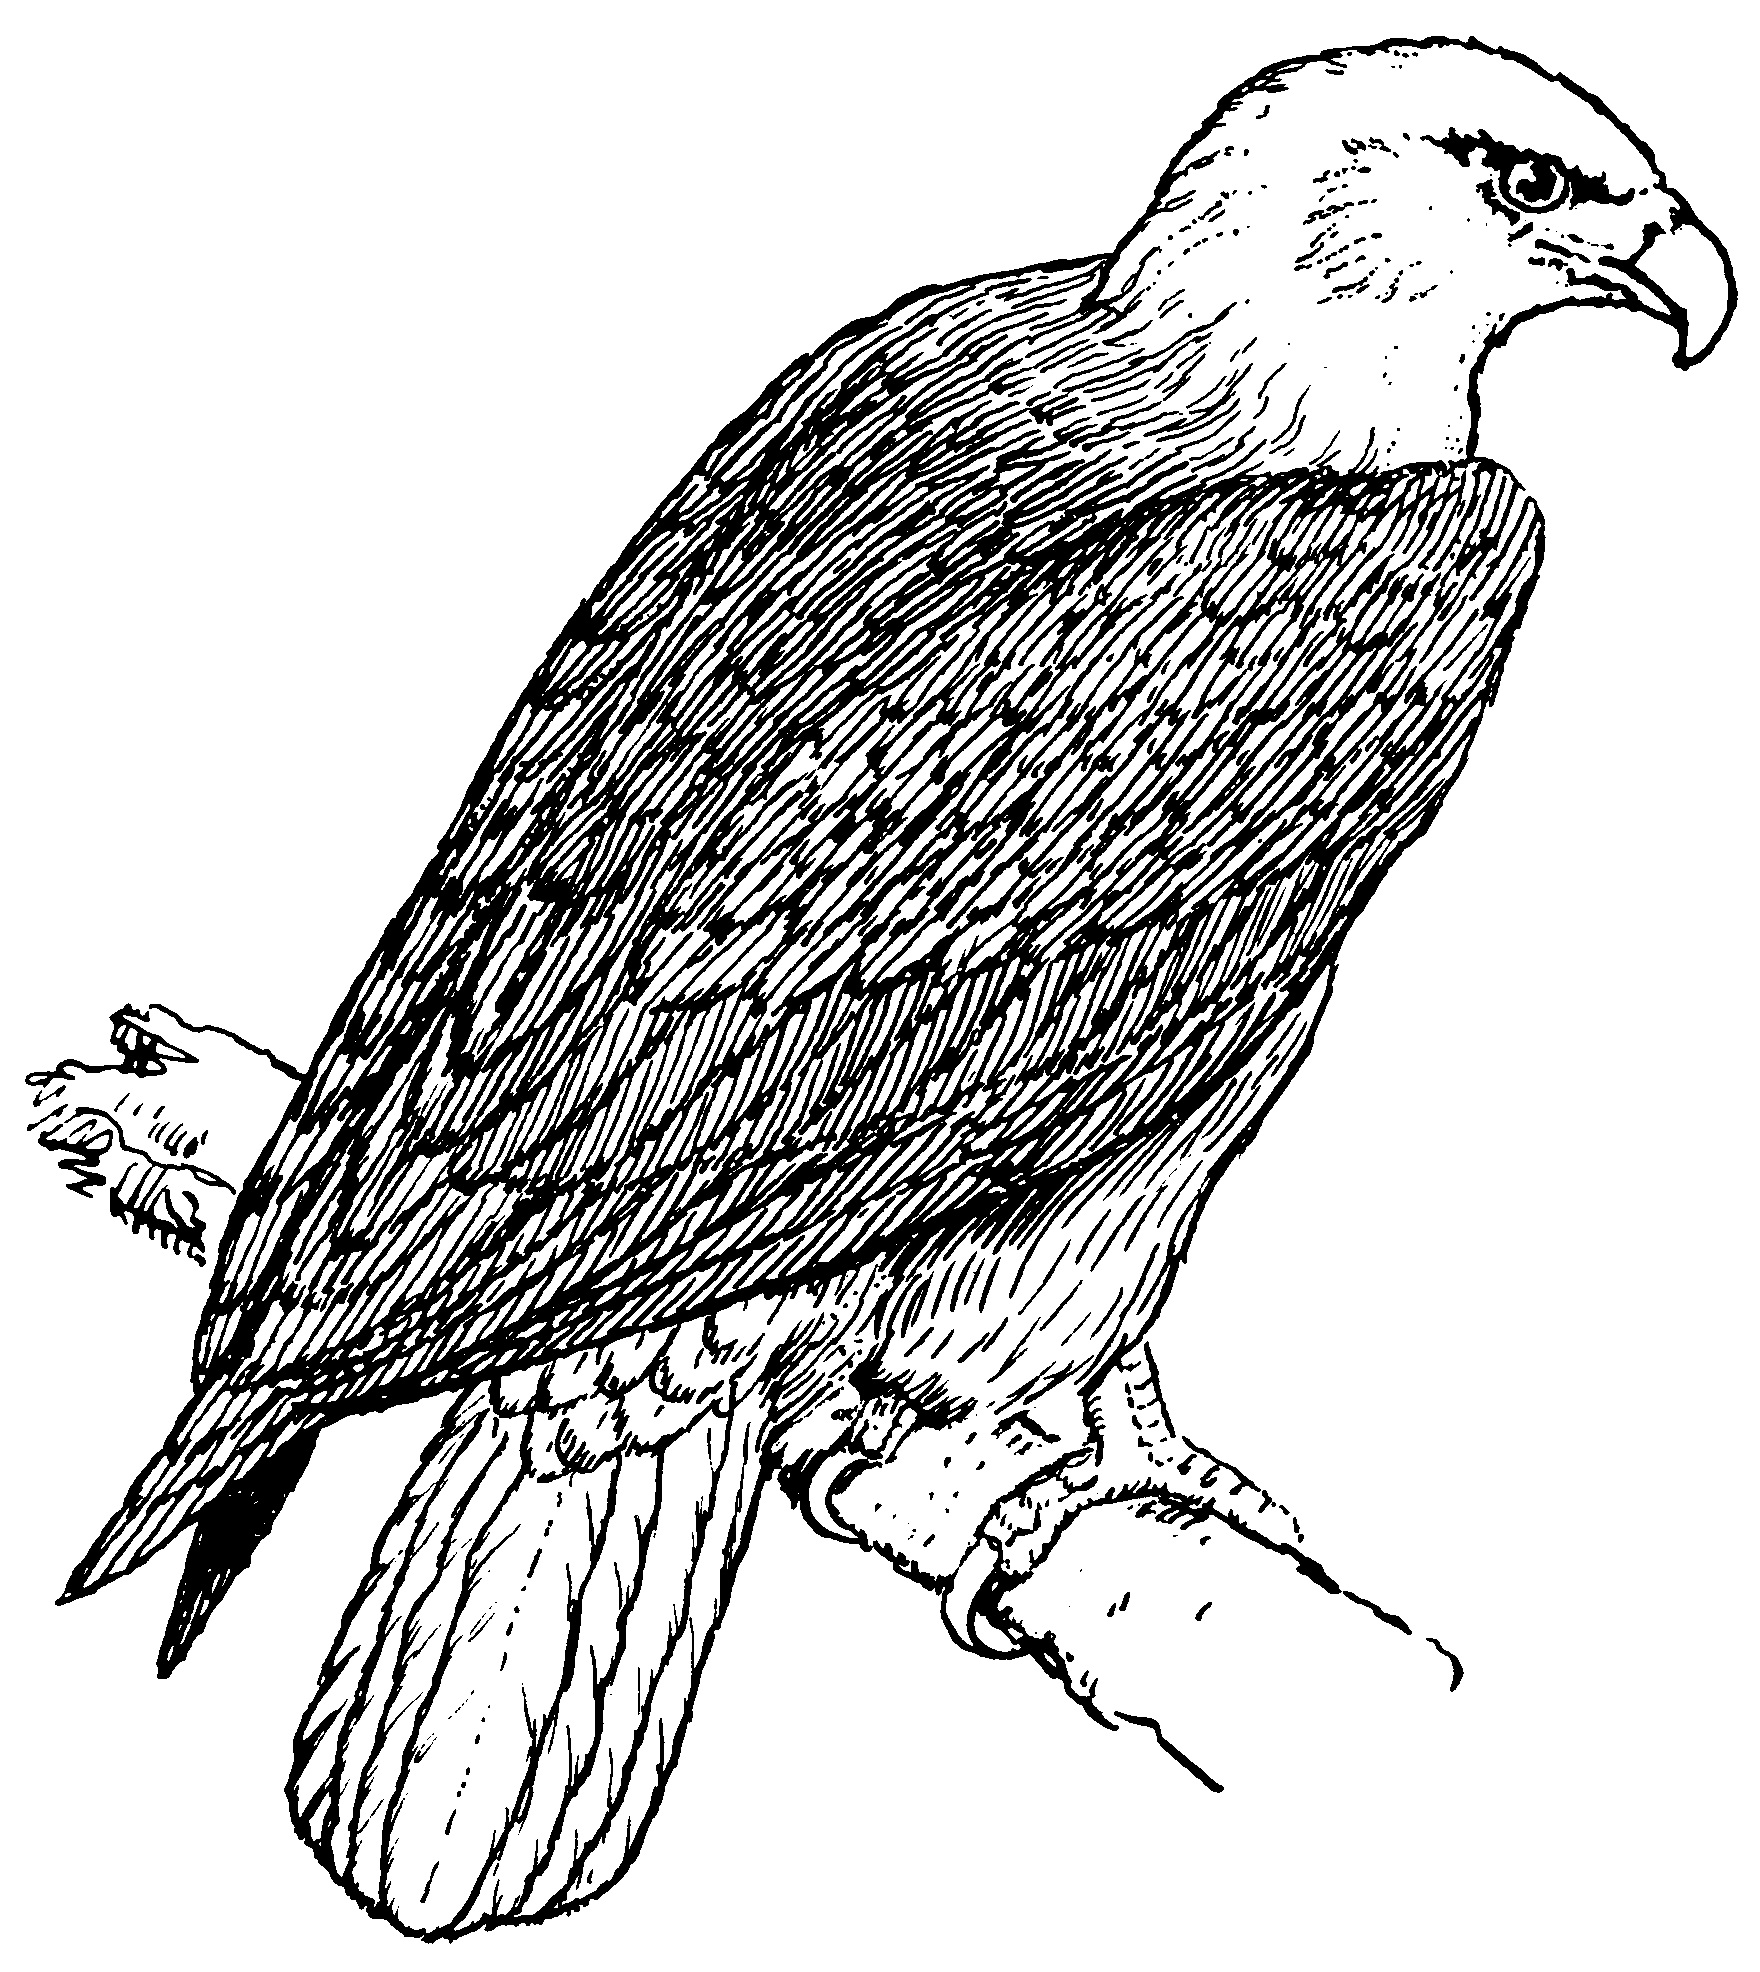 coloring eagle free printable eagle coloring pages for kids coloring eagle